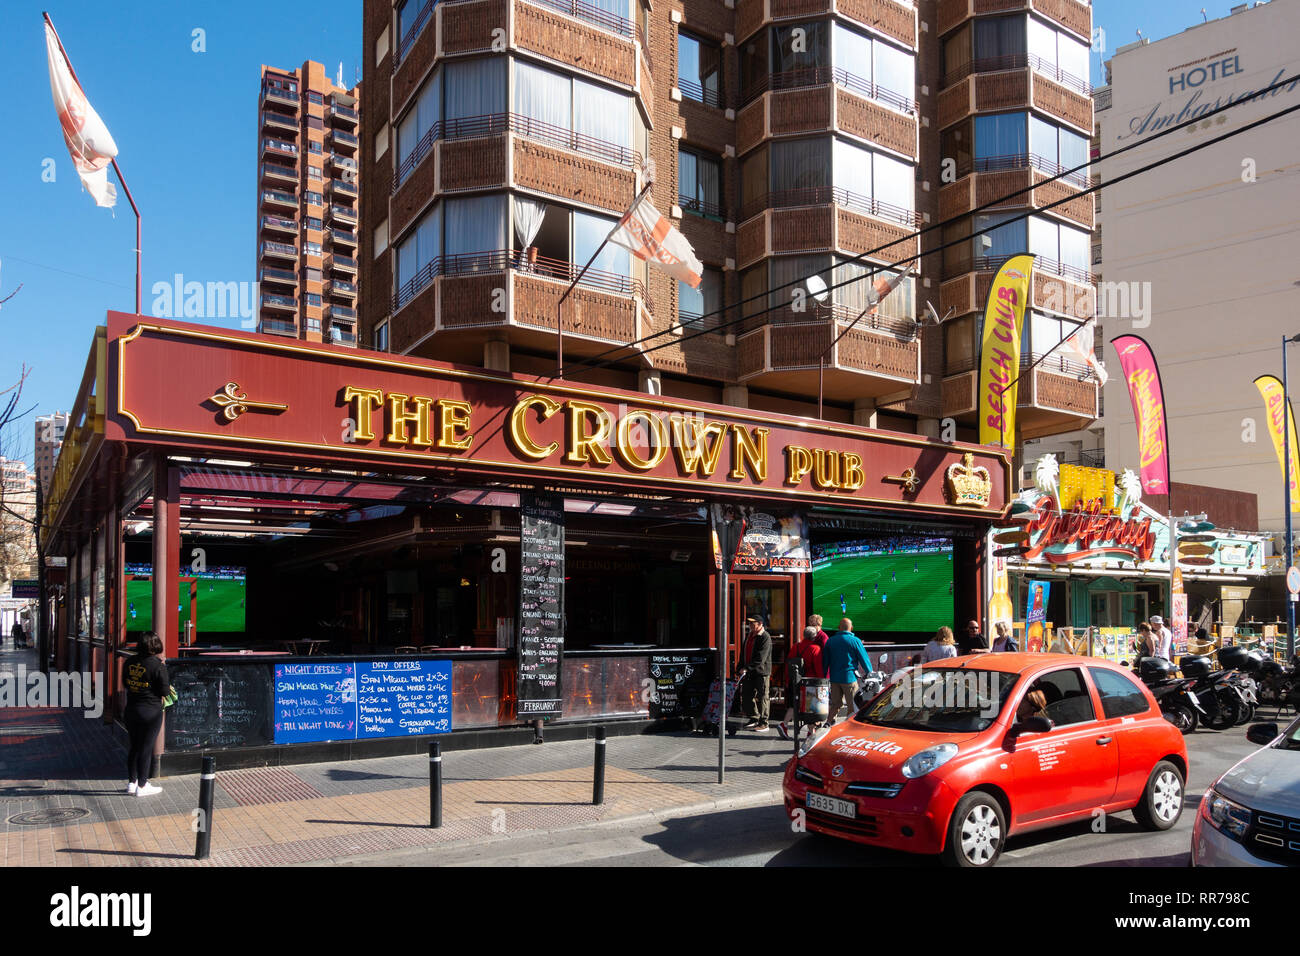 Benidorm, Costa Blanca, Spain, 25th February 2019. Two staff members at the Beachcomber pub in Benidorm New Town on the British square. Two British tourists have been arrested in relation to the alleged attack. Seen here is the Crown Pub which is not connected to the reported incident.  Credit: Mick Flynn/Alamy Live News Stock Photo